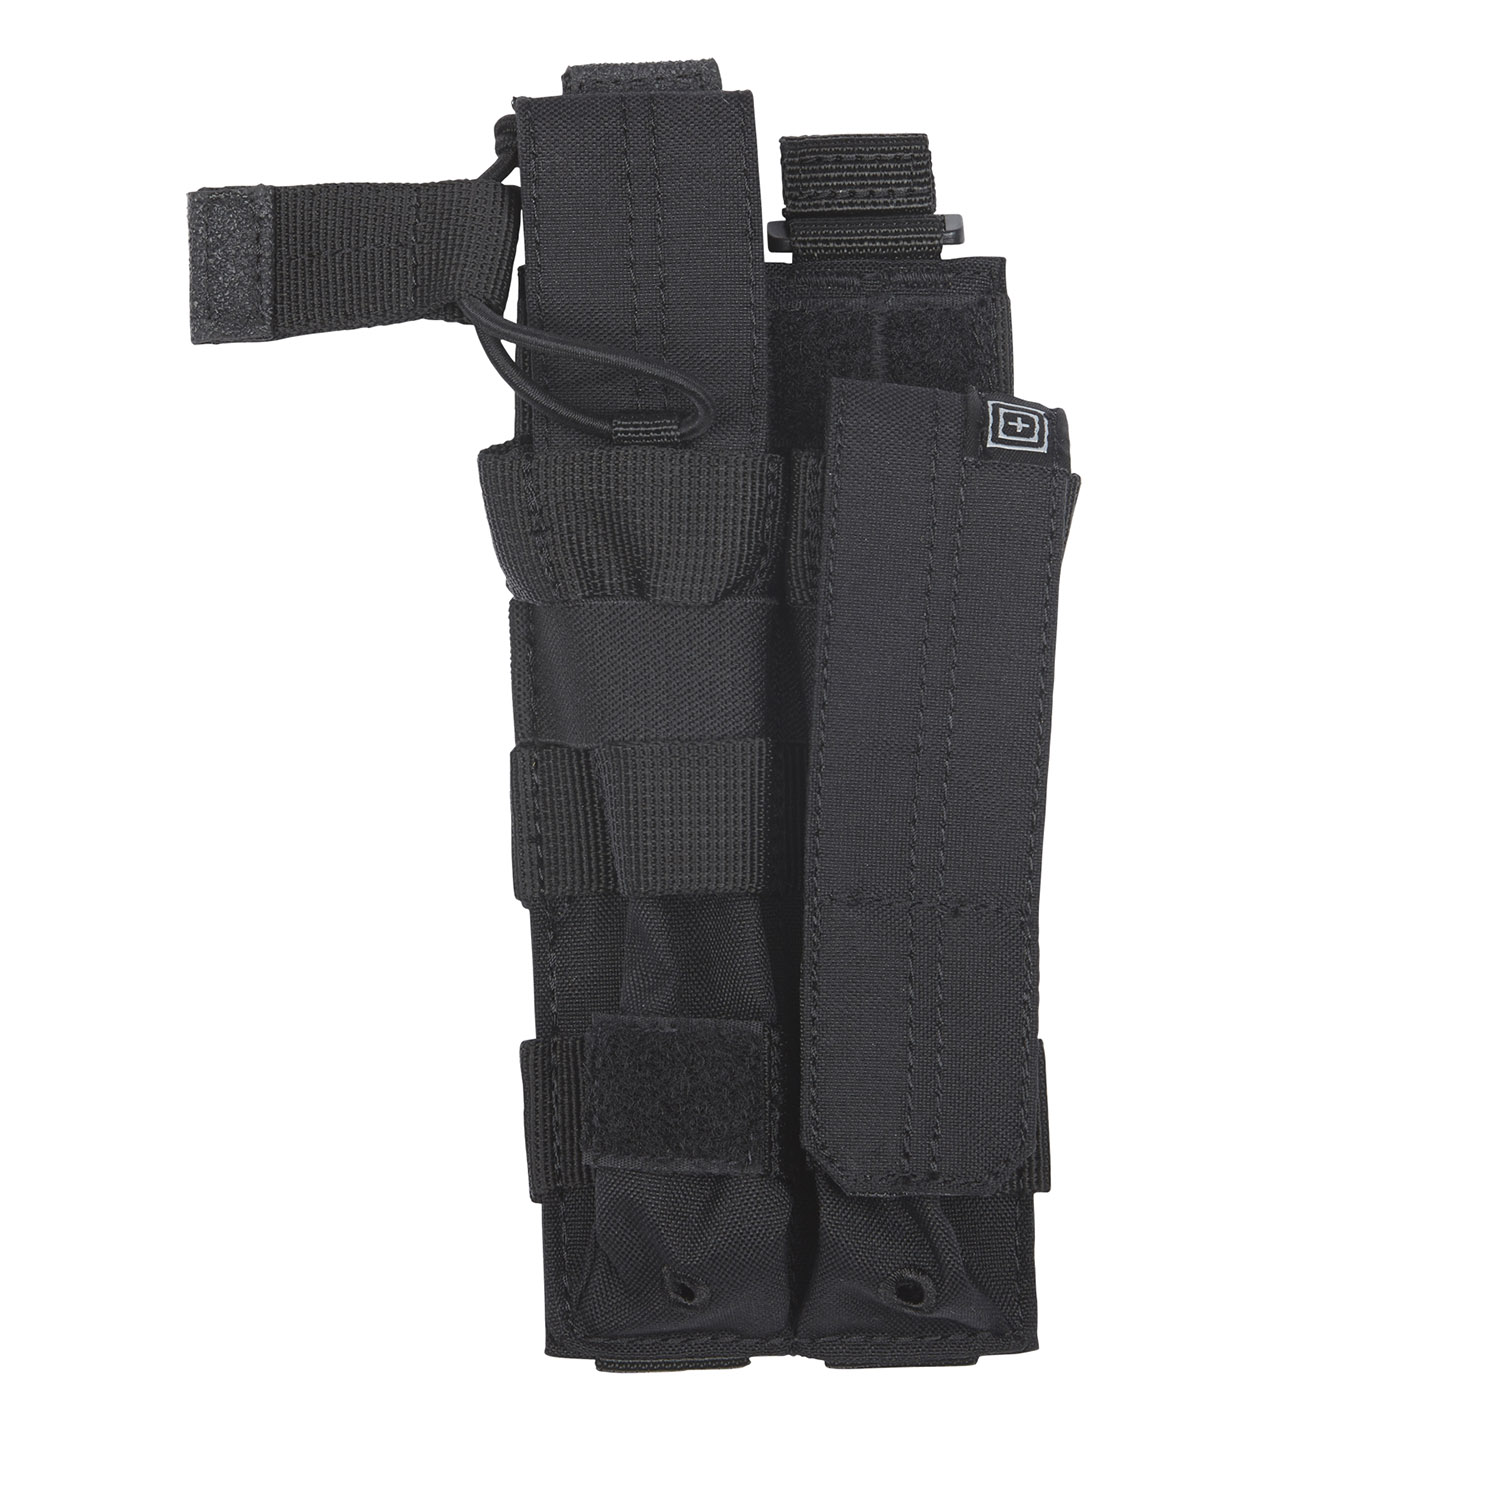 5.11 Tactical MP5 Bungee Cover